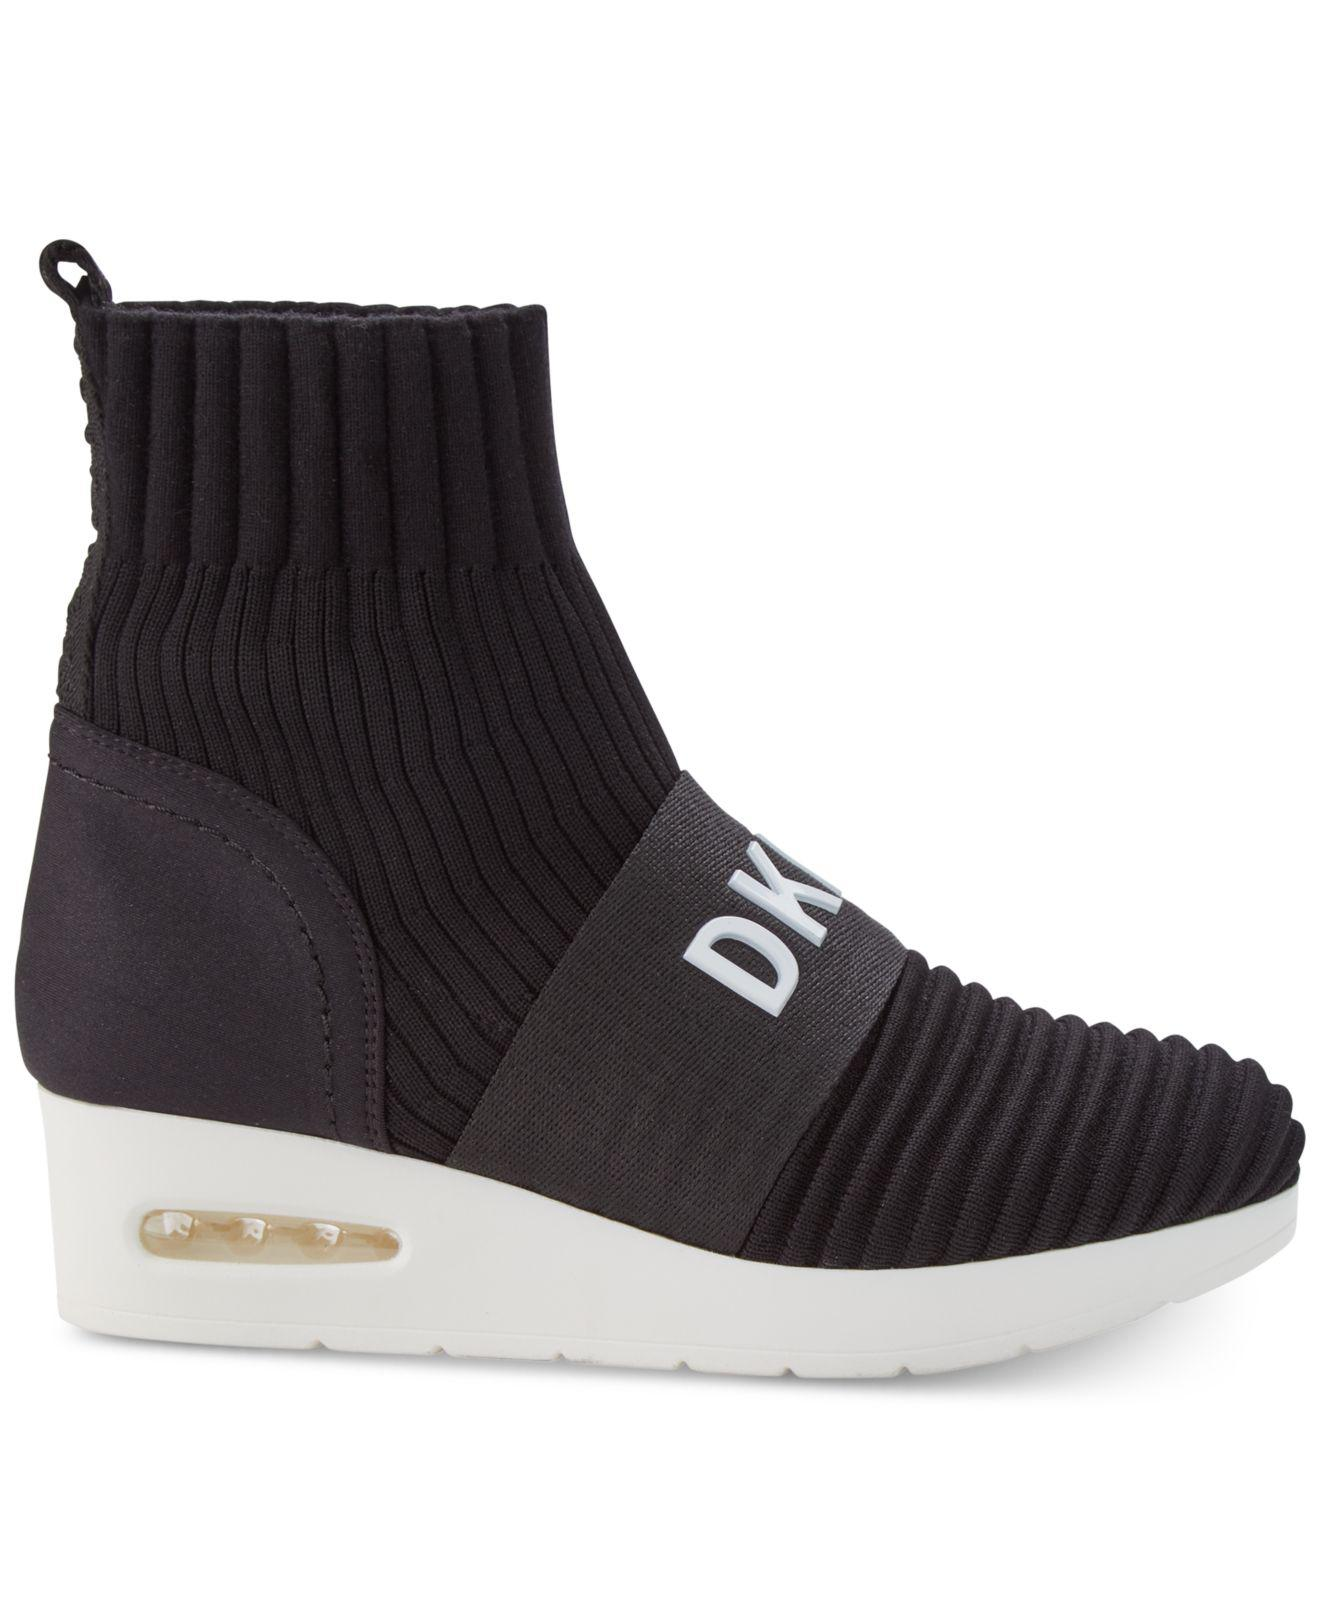 0f579987fac3 Lyst - DKNY Anna Wedge Sneakers